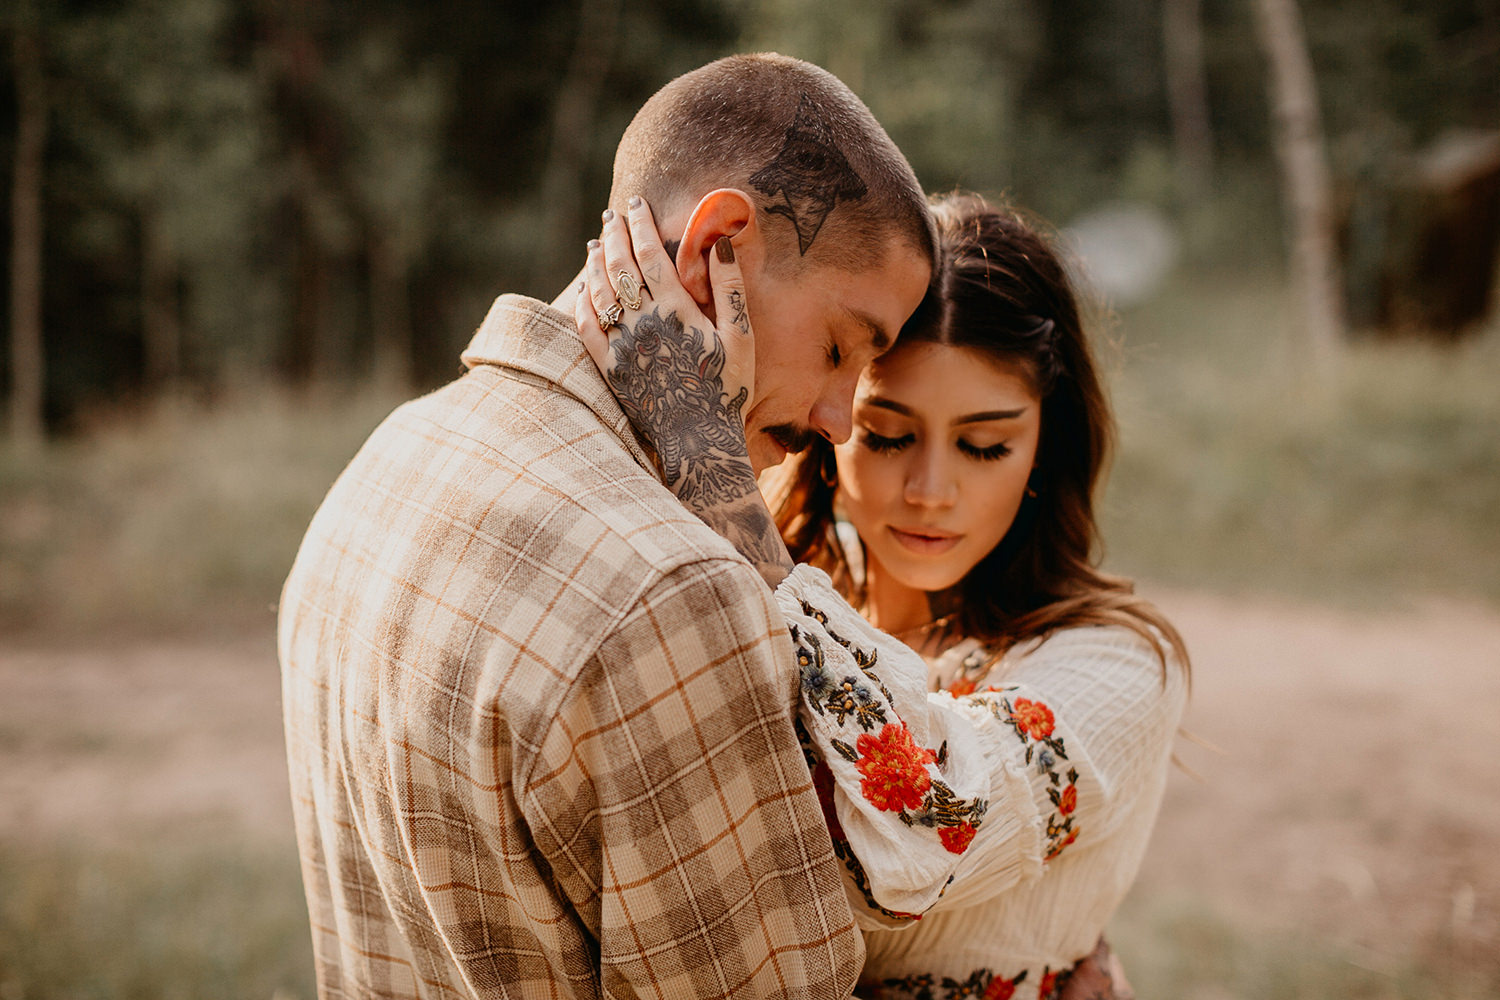 Bailey Colorado Denver Wedding Engagement Photographer Liz Osban Cheyenne Wyoming Mountain Elopement Boho bohemian vintage film tattoo non traditional tattooed rock and roll 28.jpg